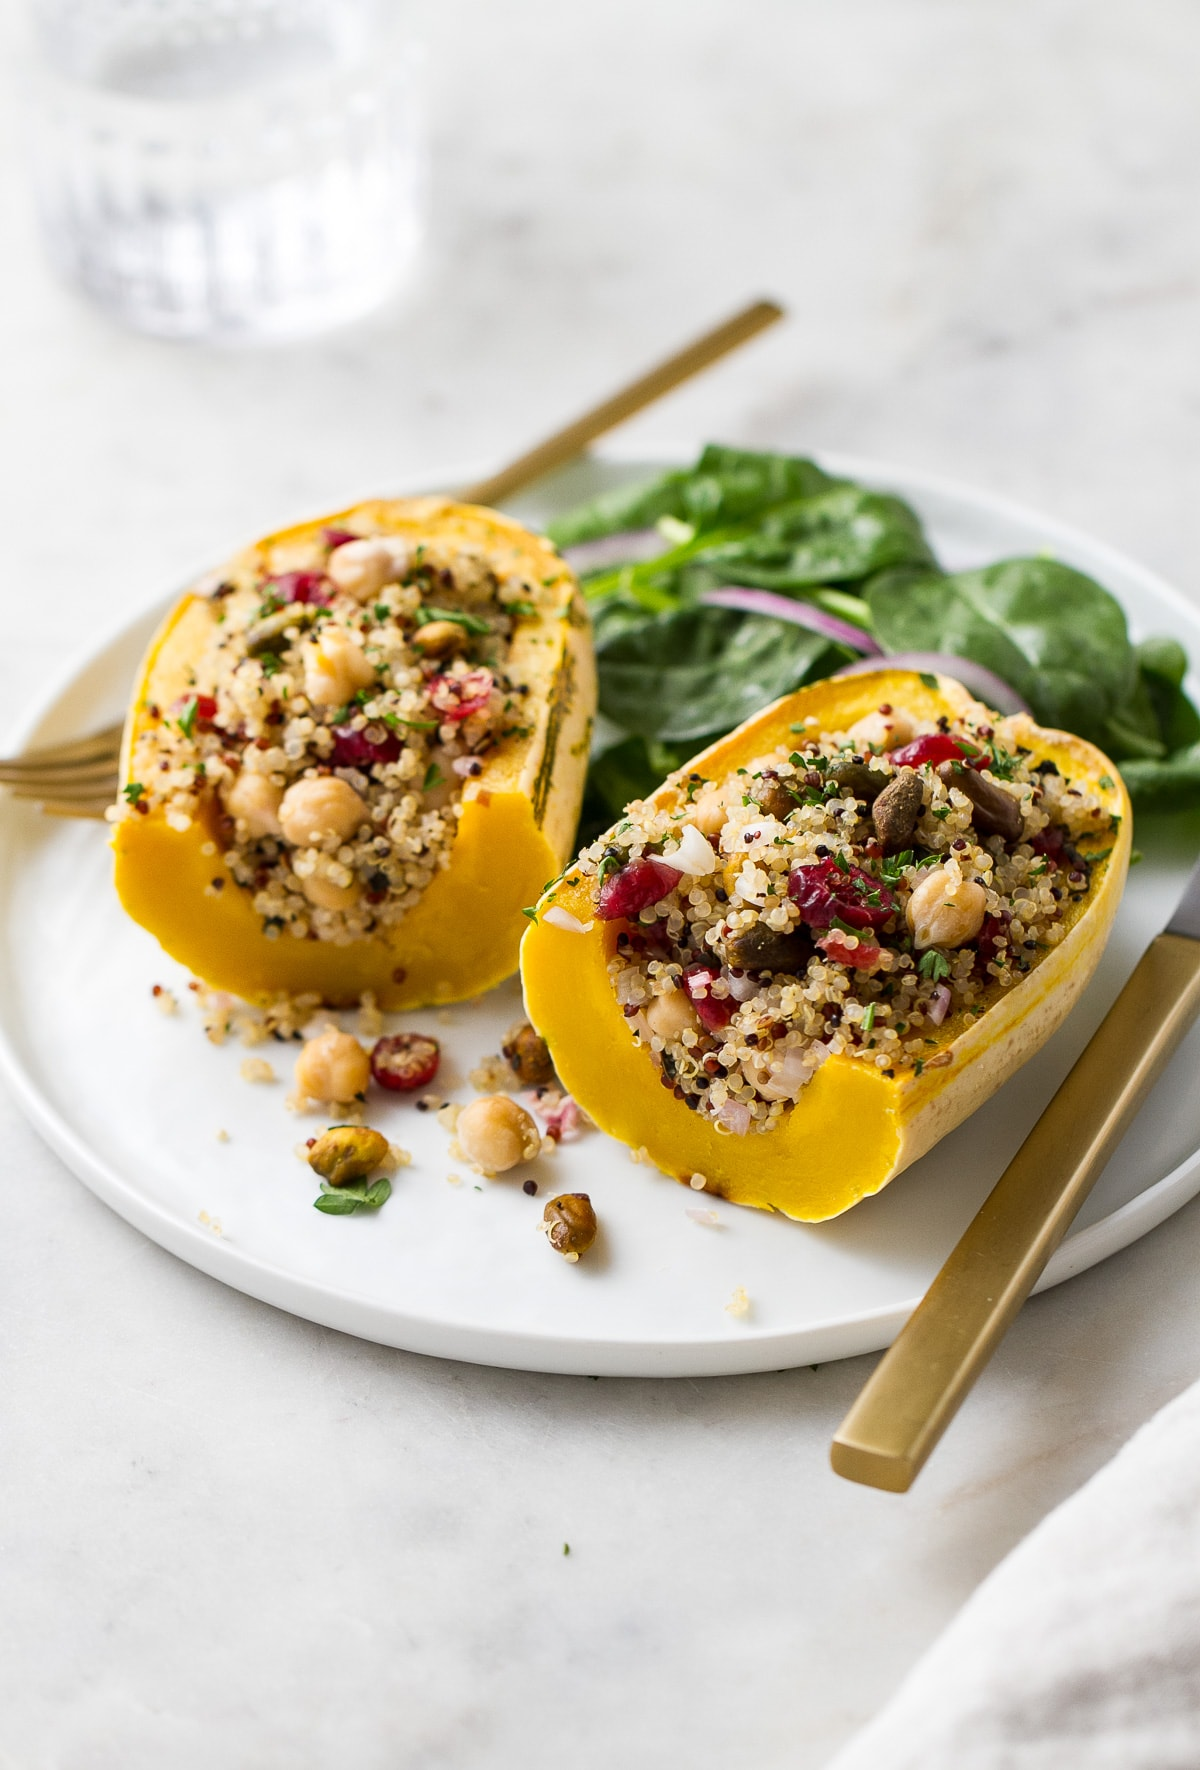 side angle view of stuffed delicata squash sliced in half on a white plate.